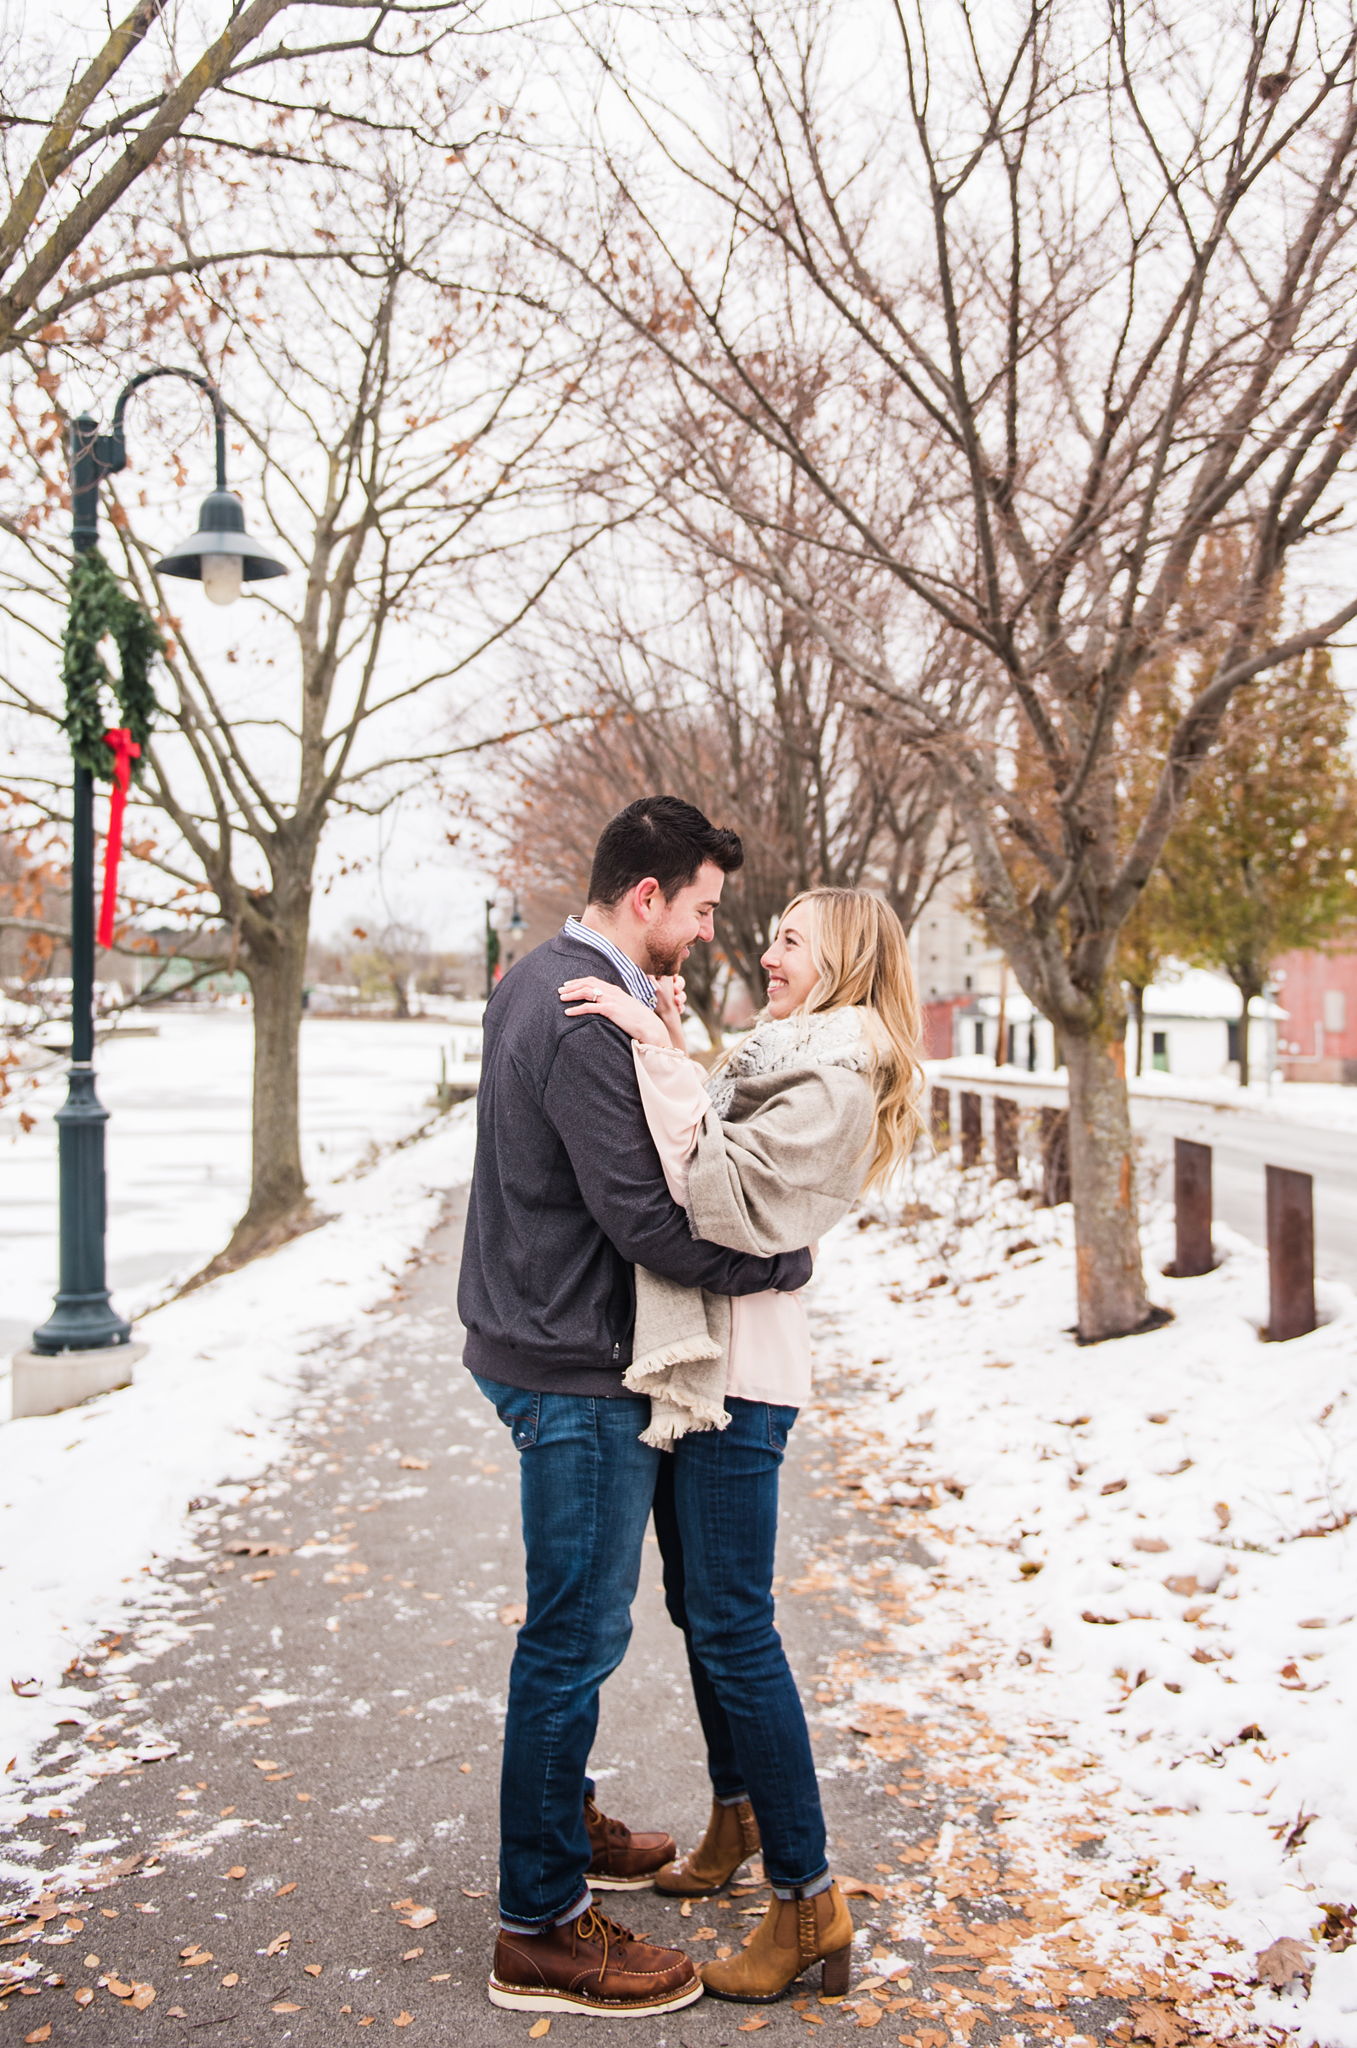 Schoen_Place_Rochester_Engagement_Session_JILL_STUDIO_Rochester_NY_Photographer_DSC_1298.jpg